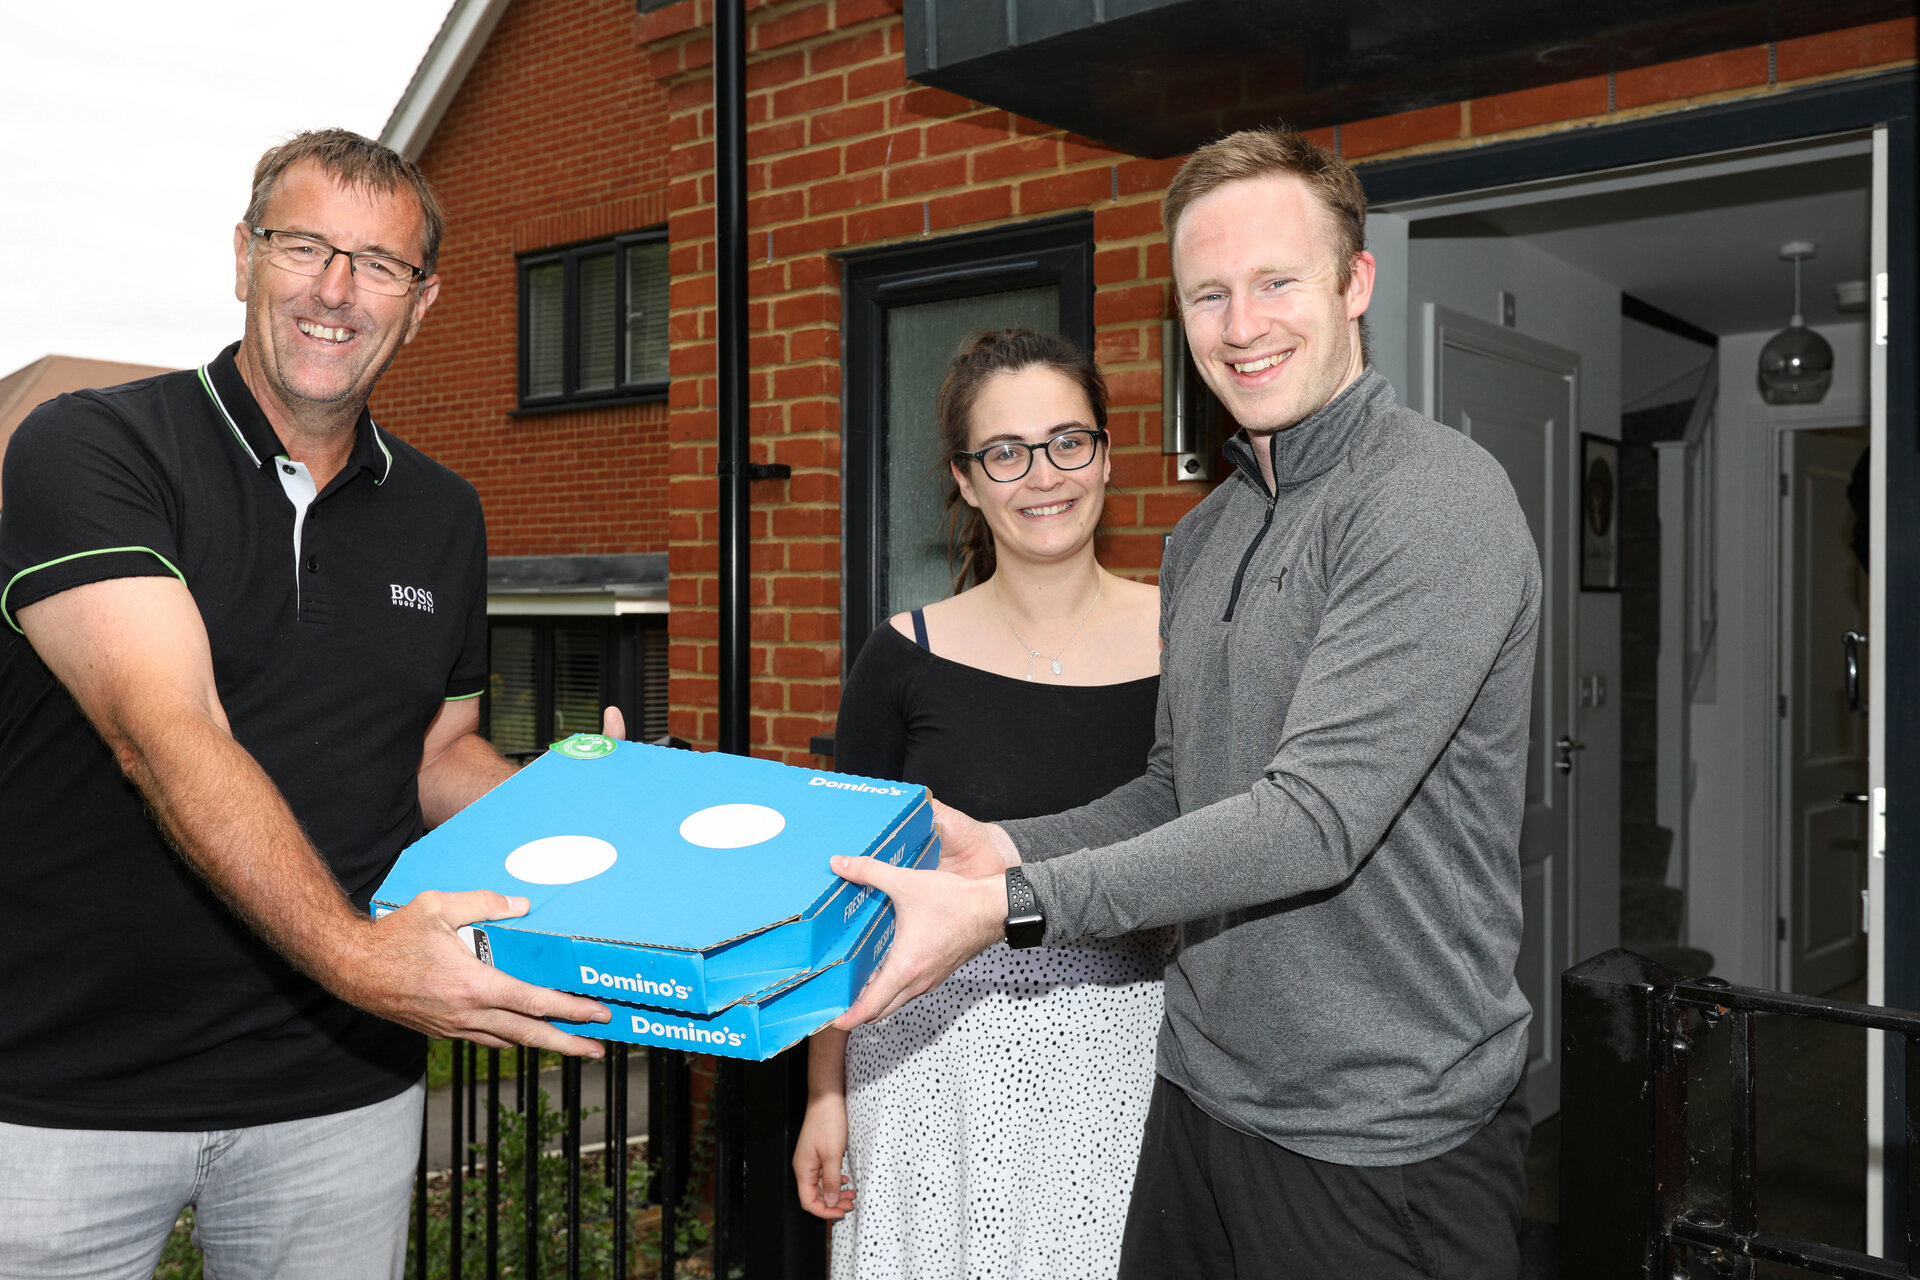 Lee Nicholas and his wife, Kimberley, with Matt. Southampton icon and Saints Foundation ambassador Matt le Tissier presented Domino's pizzas to Saints Foundation volunteers Picture: Chris Moorhouse Tuesday 7th July